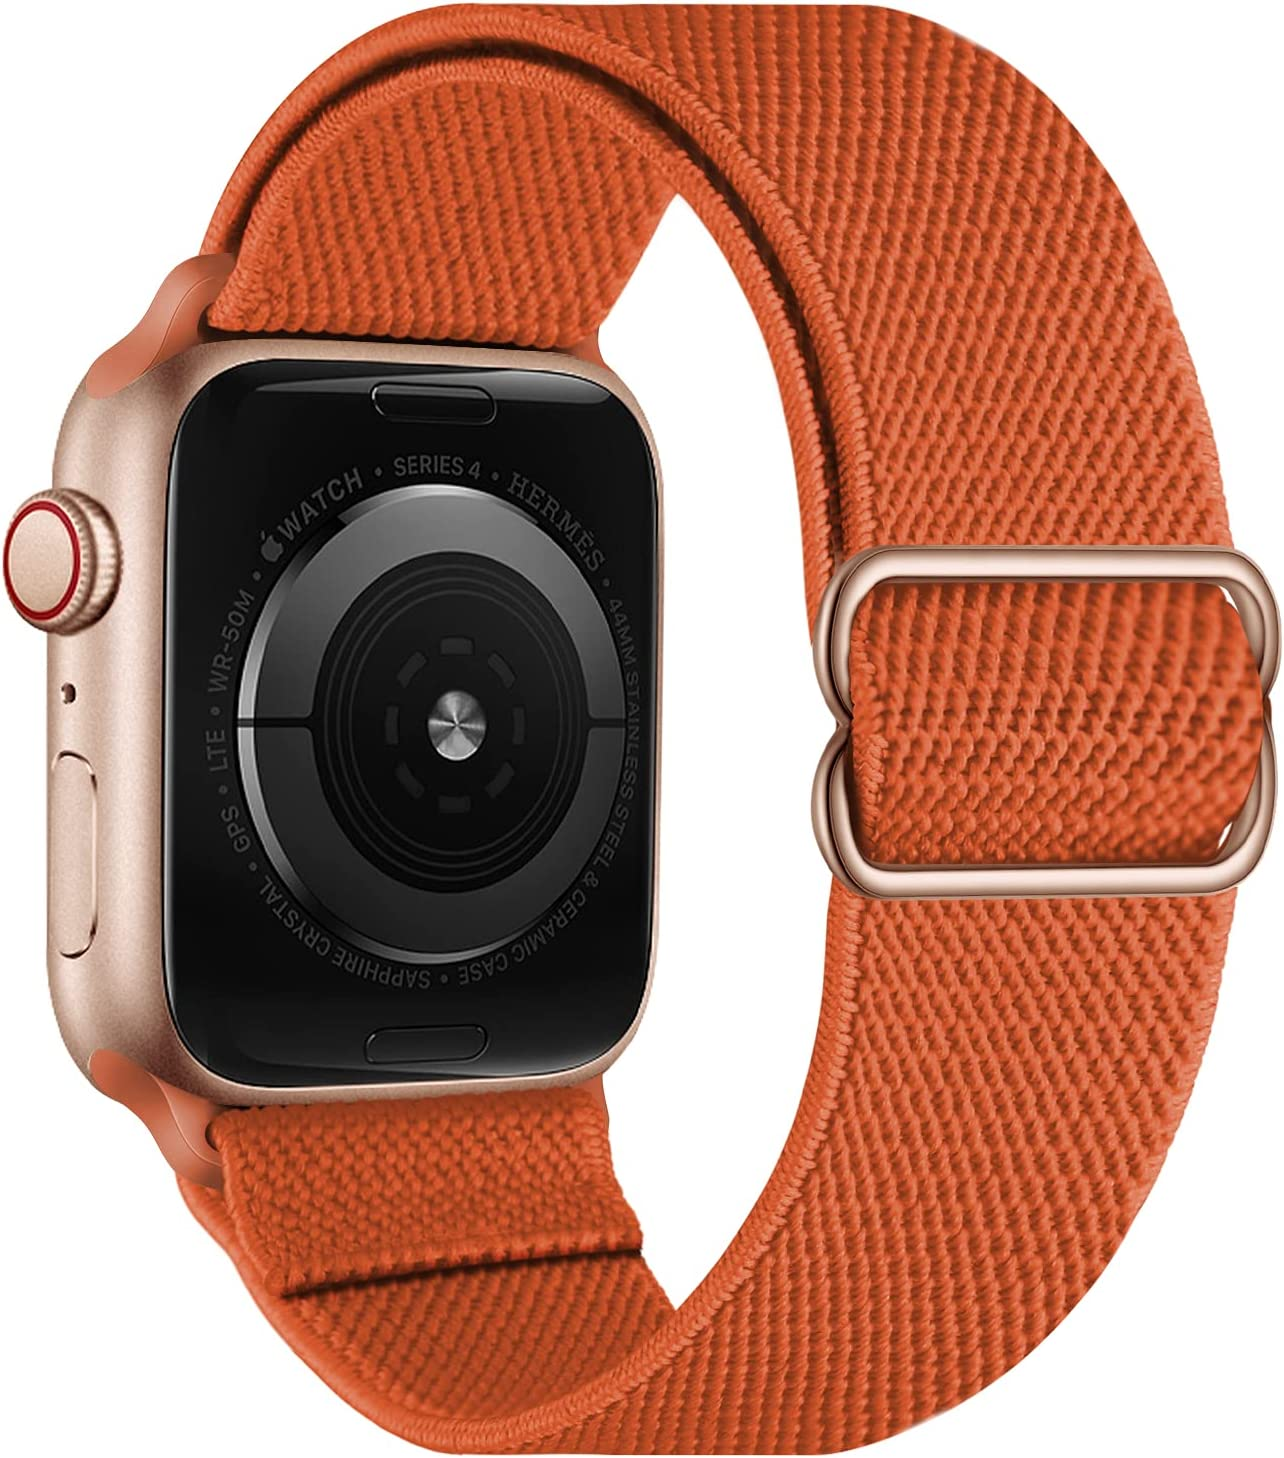 OXWALLEN Stretchy Nylon Solo Loop Compatible with Apple Watch Bands 38mm 40mm, Adjustable Elastic Braided Stretches Women Men Strap for iWatch SE Series 6/5/4/3/2/1,Orange